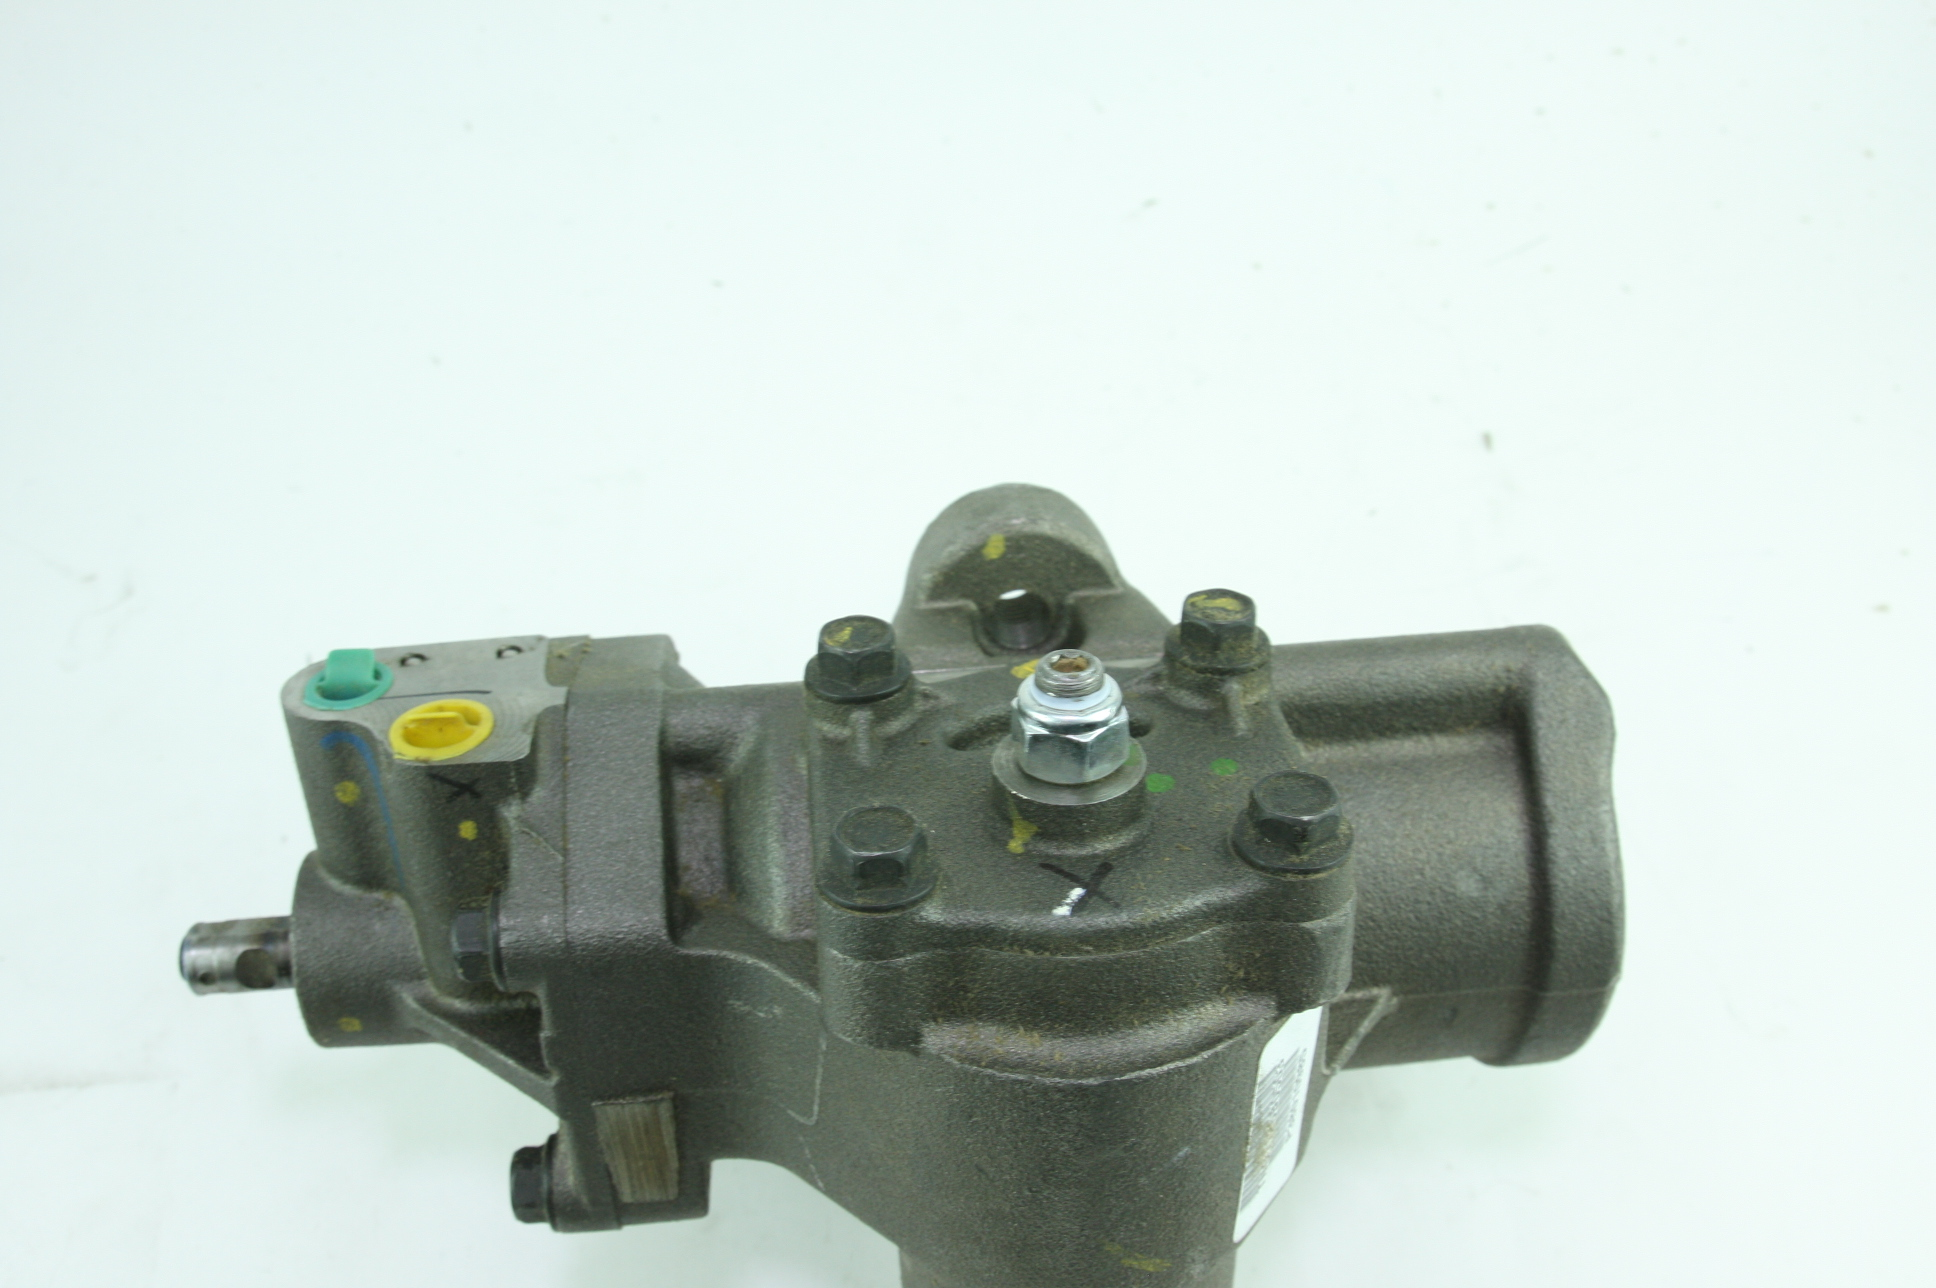 New Genuine OEM ACDelco 84315660 GM Reman Steering Gear Fast Free Shipping - image 3